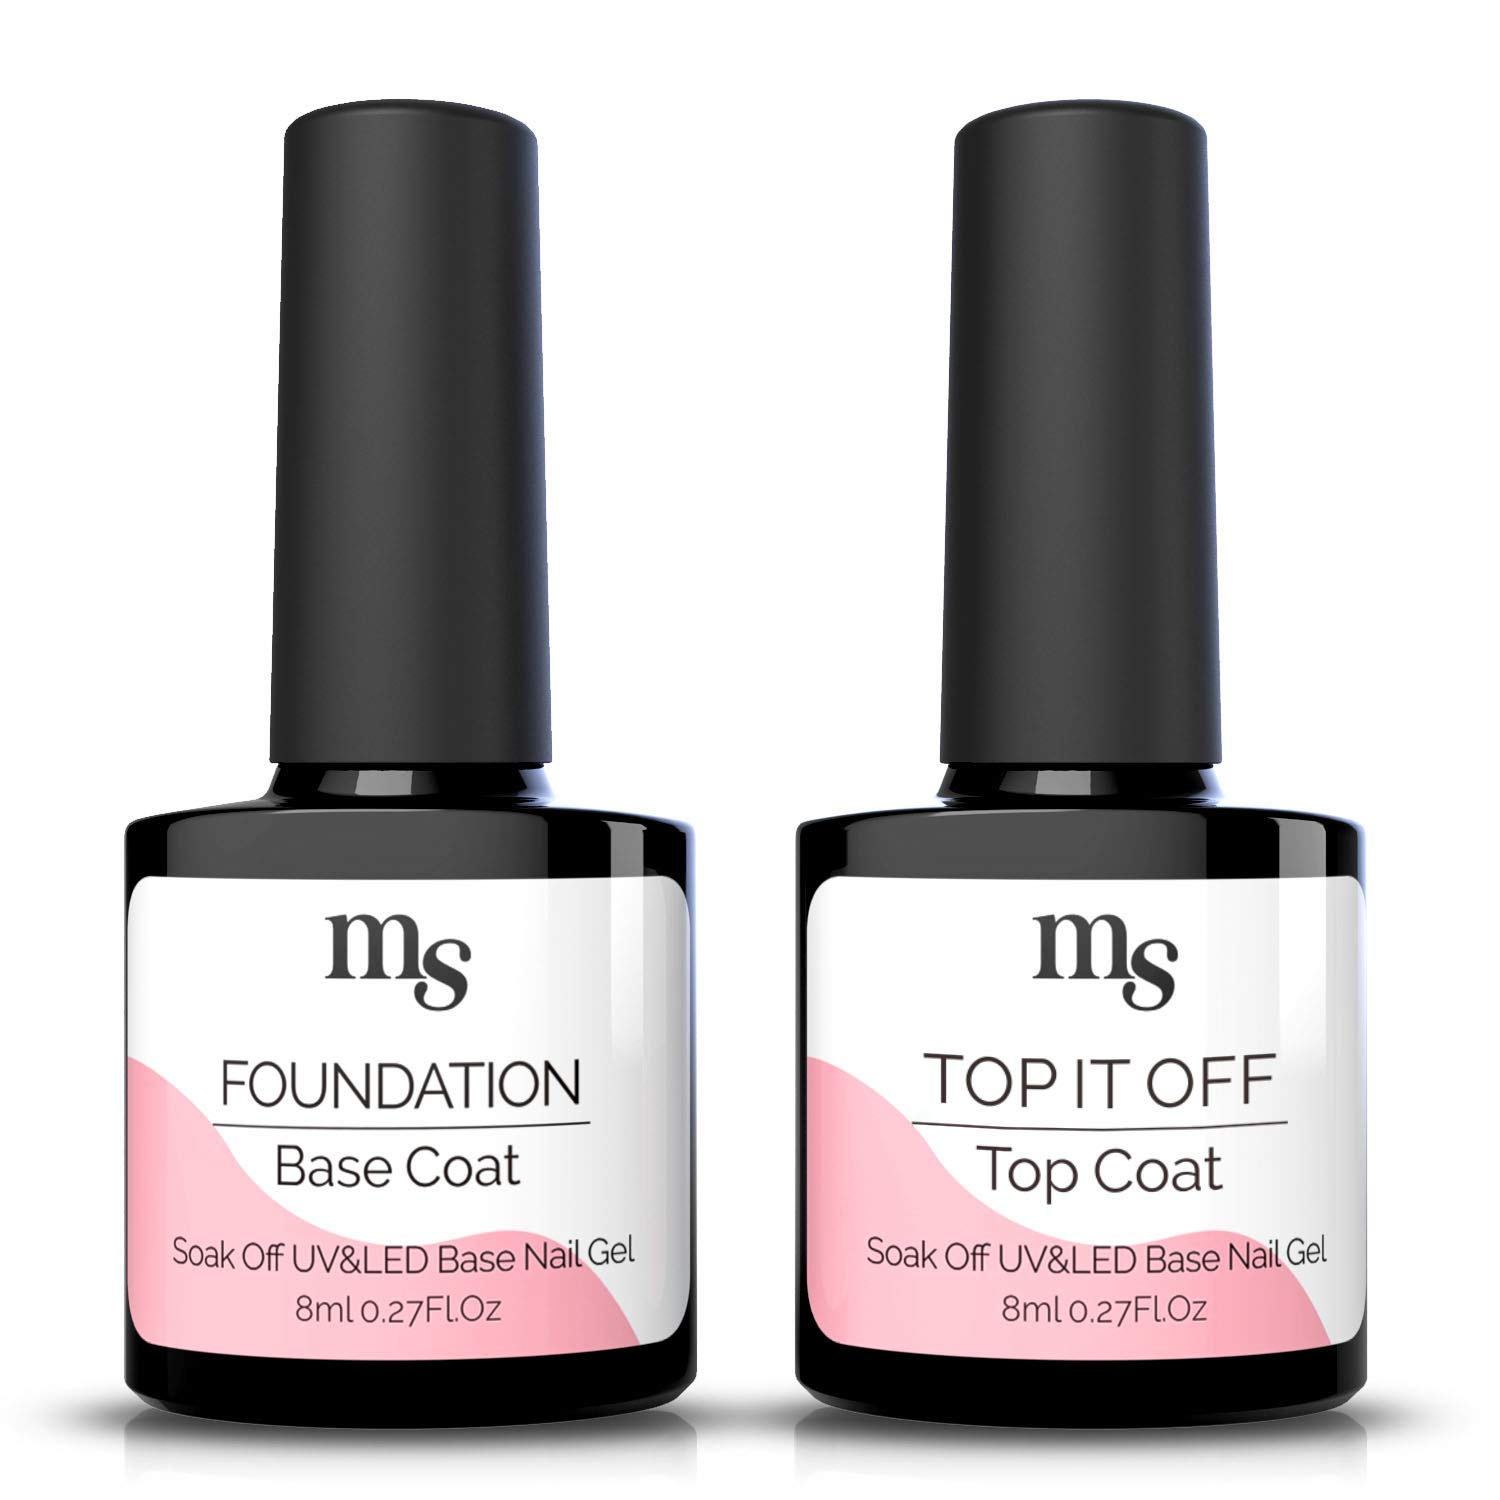 MelodySusie Gel Base and No Wipe Top Coat Set - Long Lasting, Shiny Finish, Soak Off UV LED Gel Nail Lacquer for Color Gel, Polygel, Dip Powder, Manicure, Pedicure, 2 x 8ml